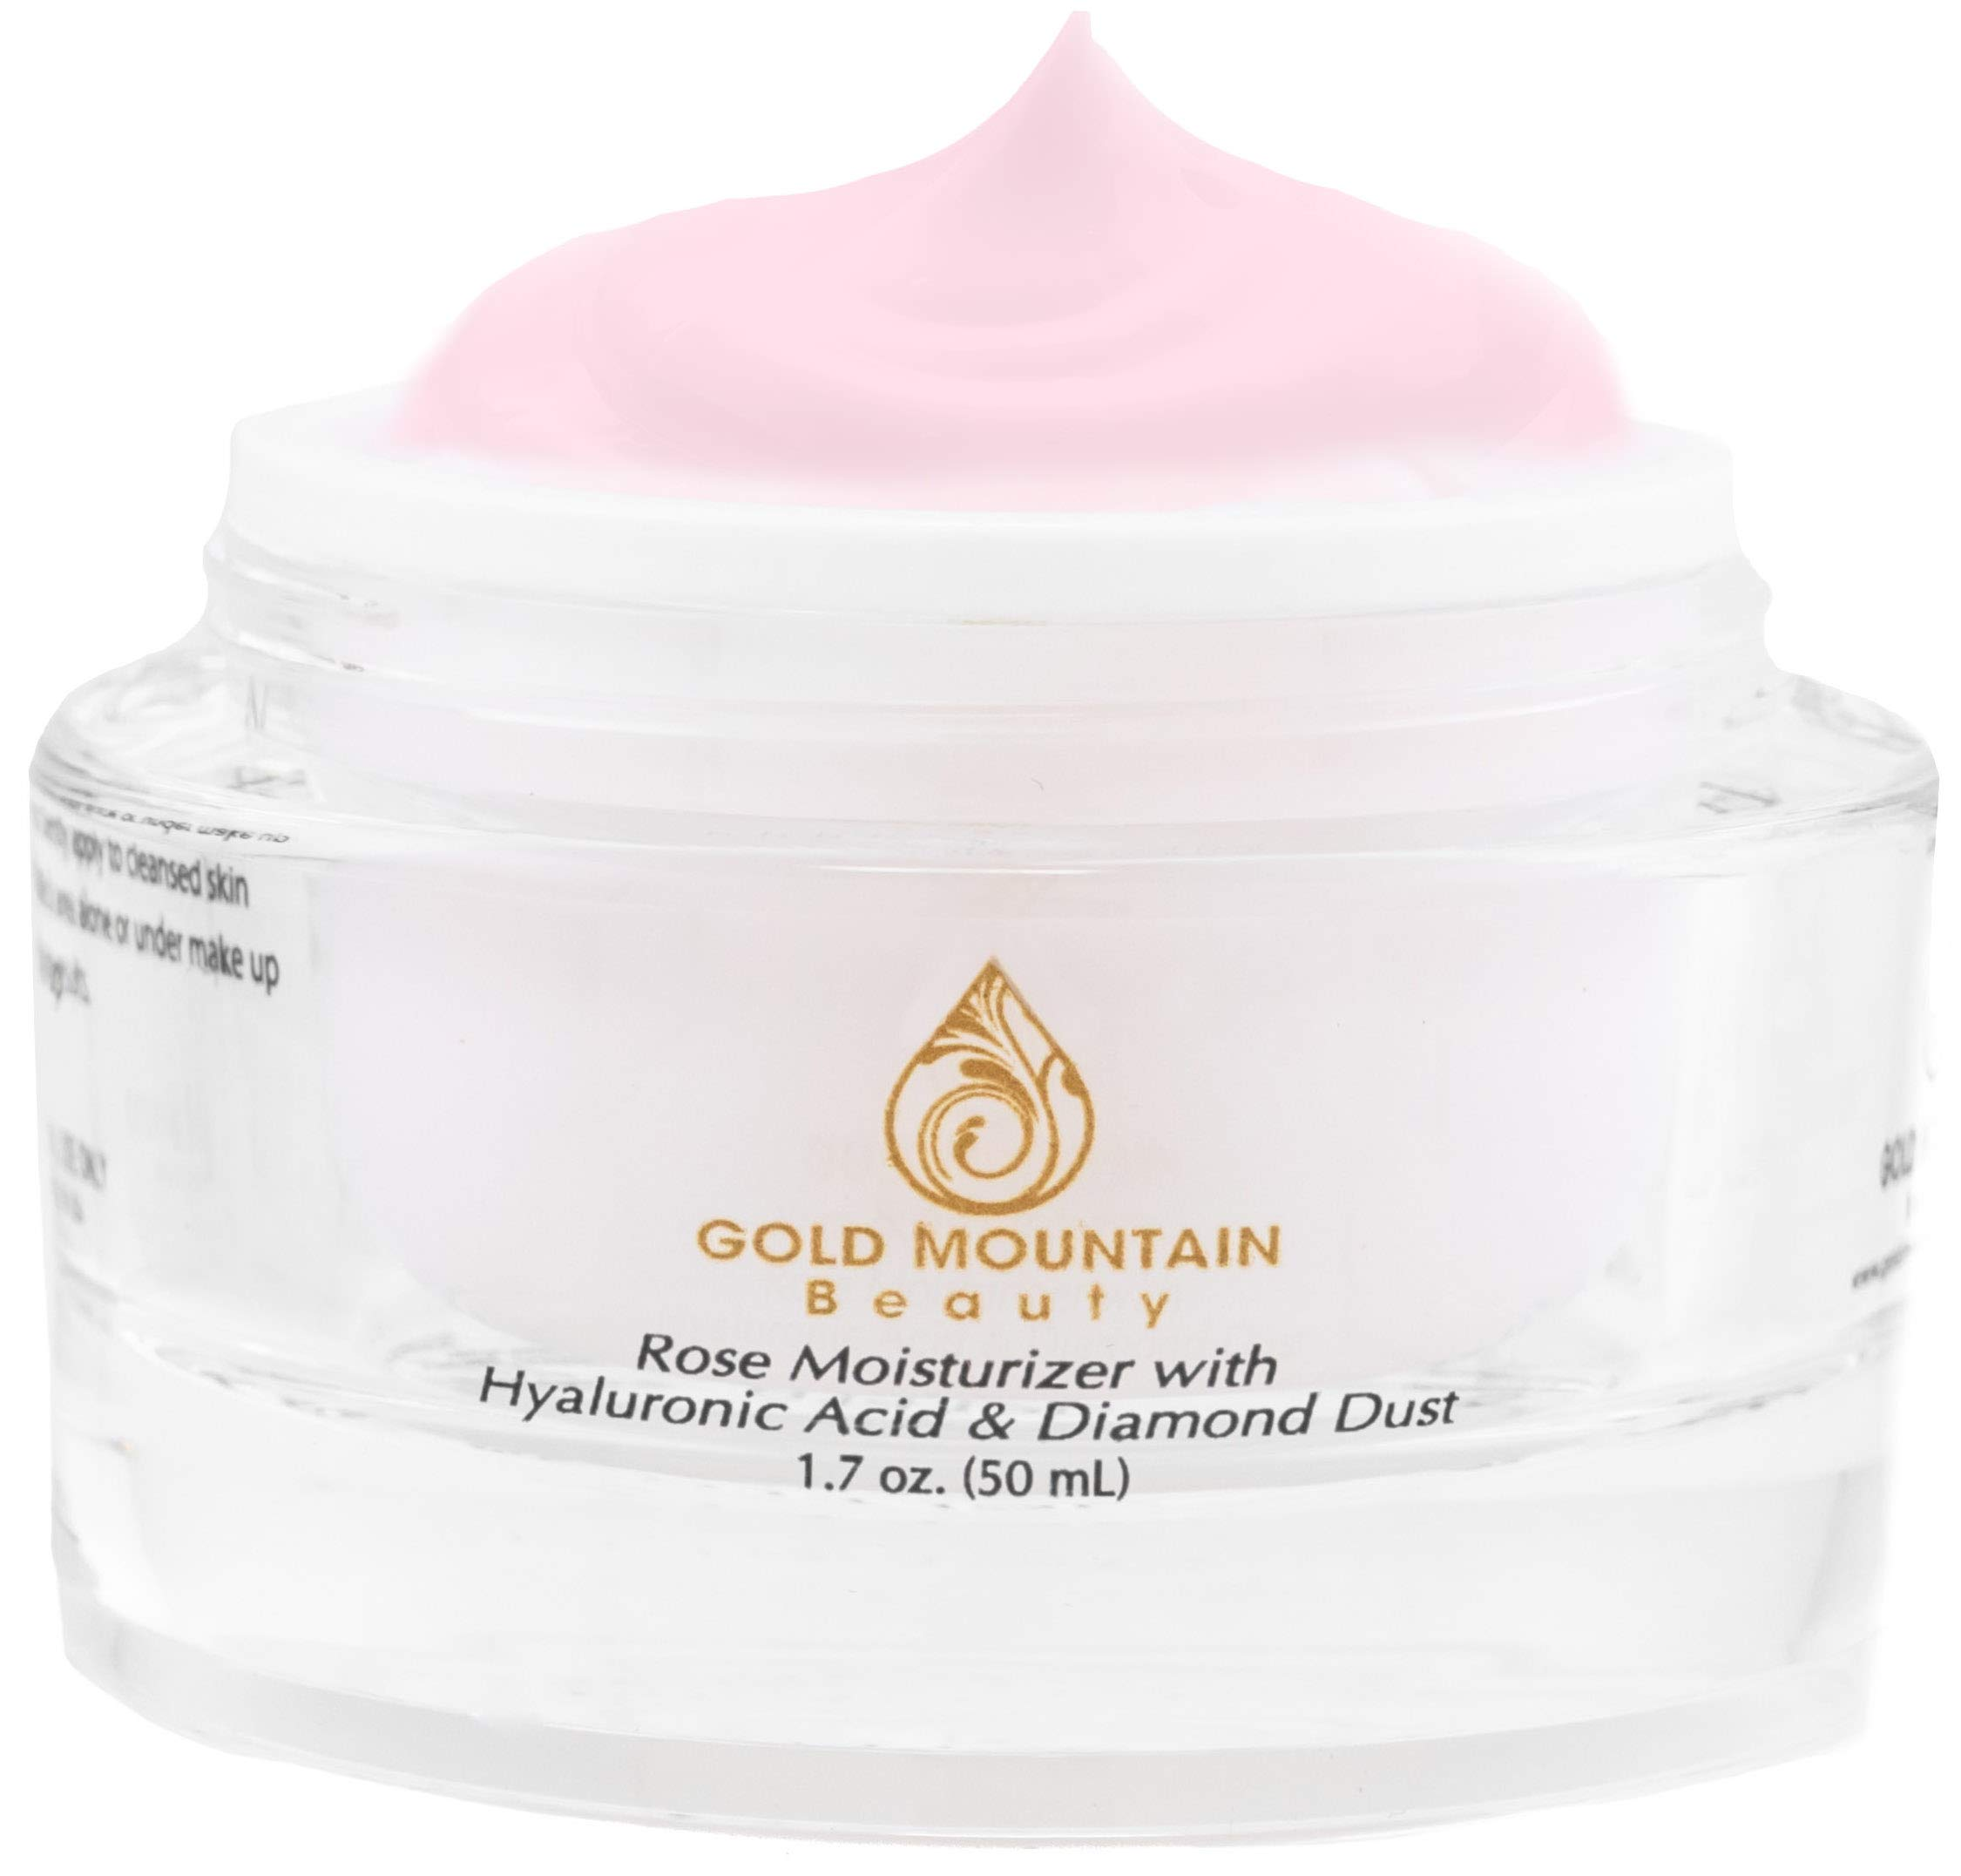 Anti Aging Face Cream Moisturizer - with Rose Scent, Hyaluronic Acid and Diamond Dust, Anti-Aging Anti-Wrinkle Night Cream for Woman and Men, Skin Care by Gold Mountain Beauty